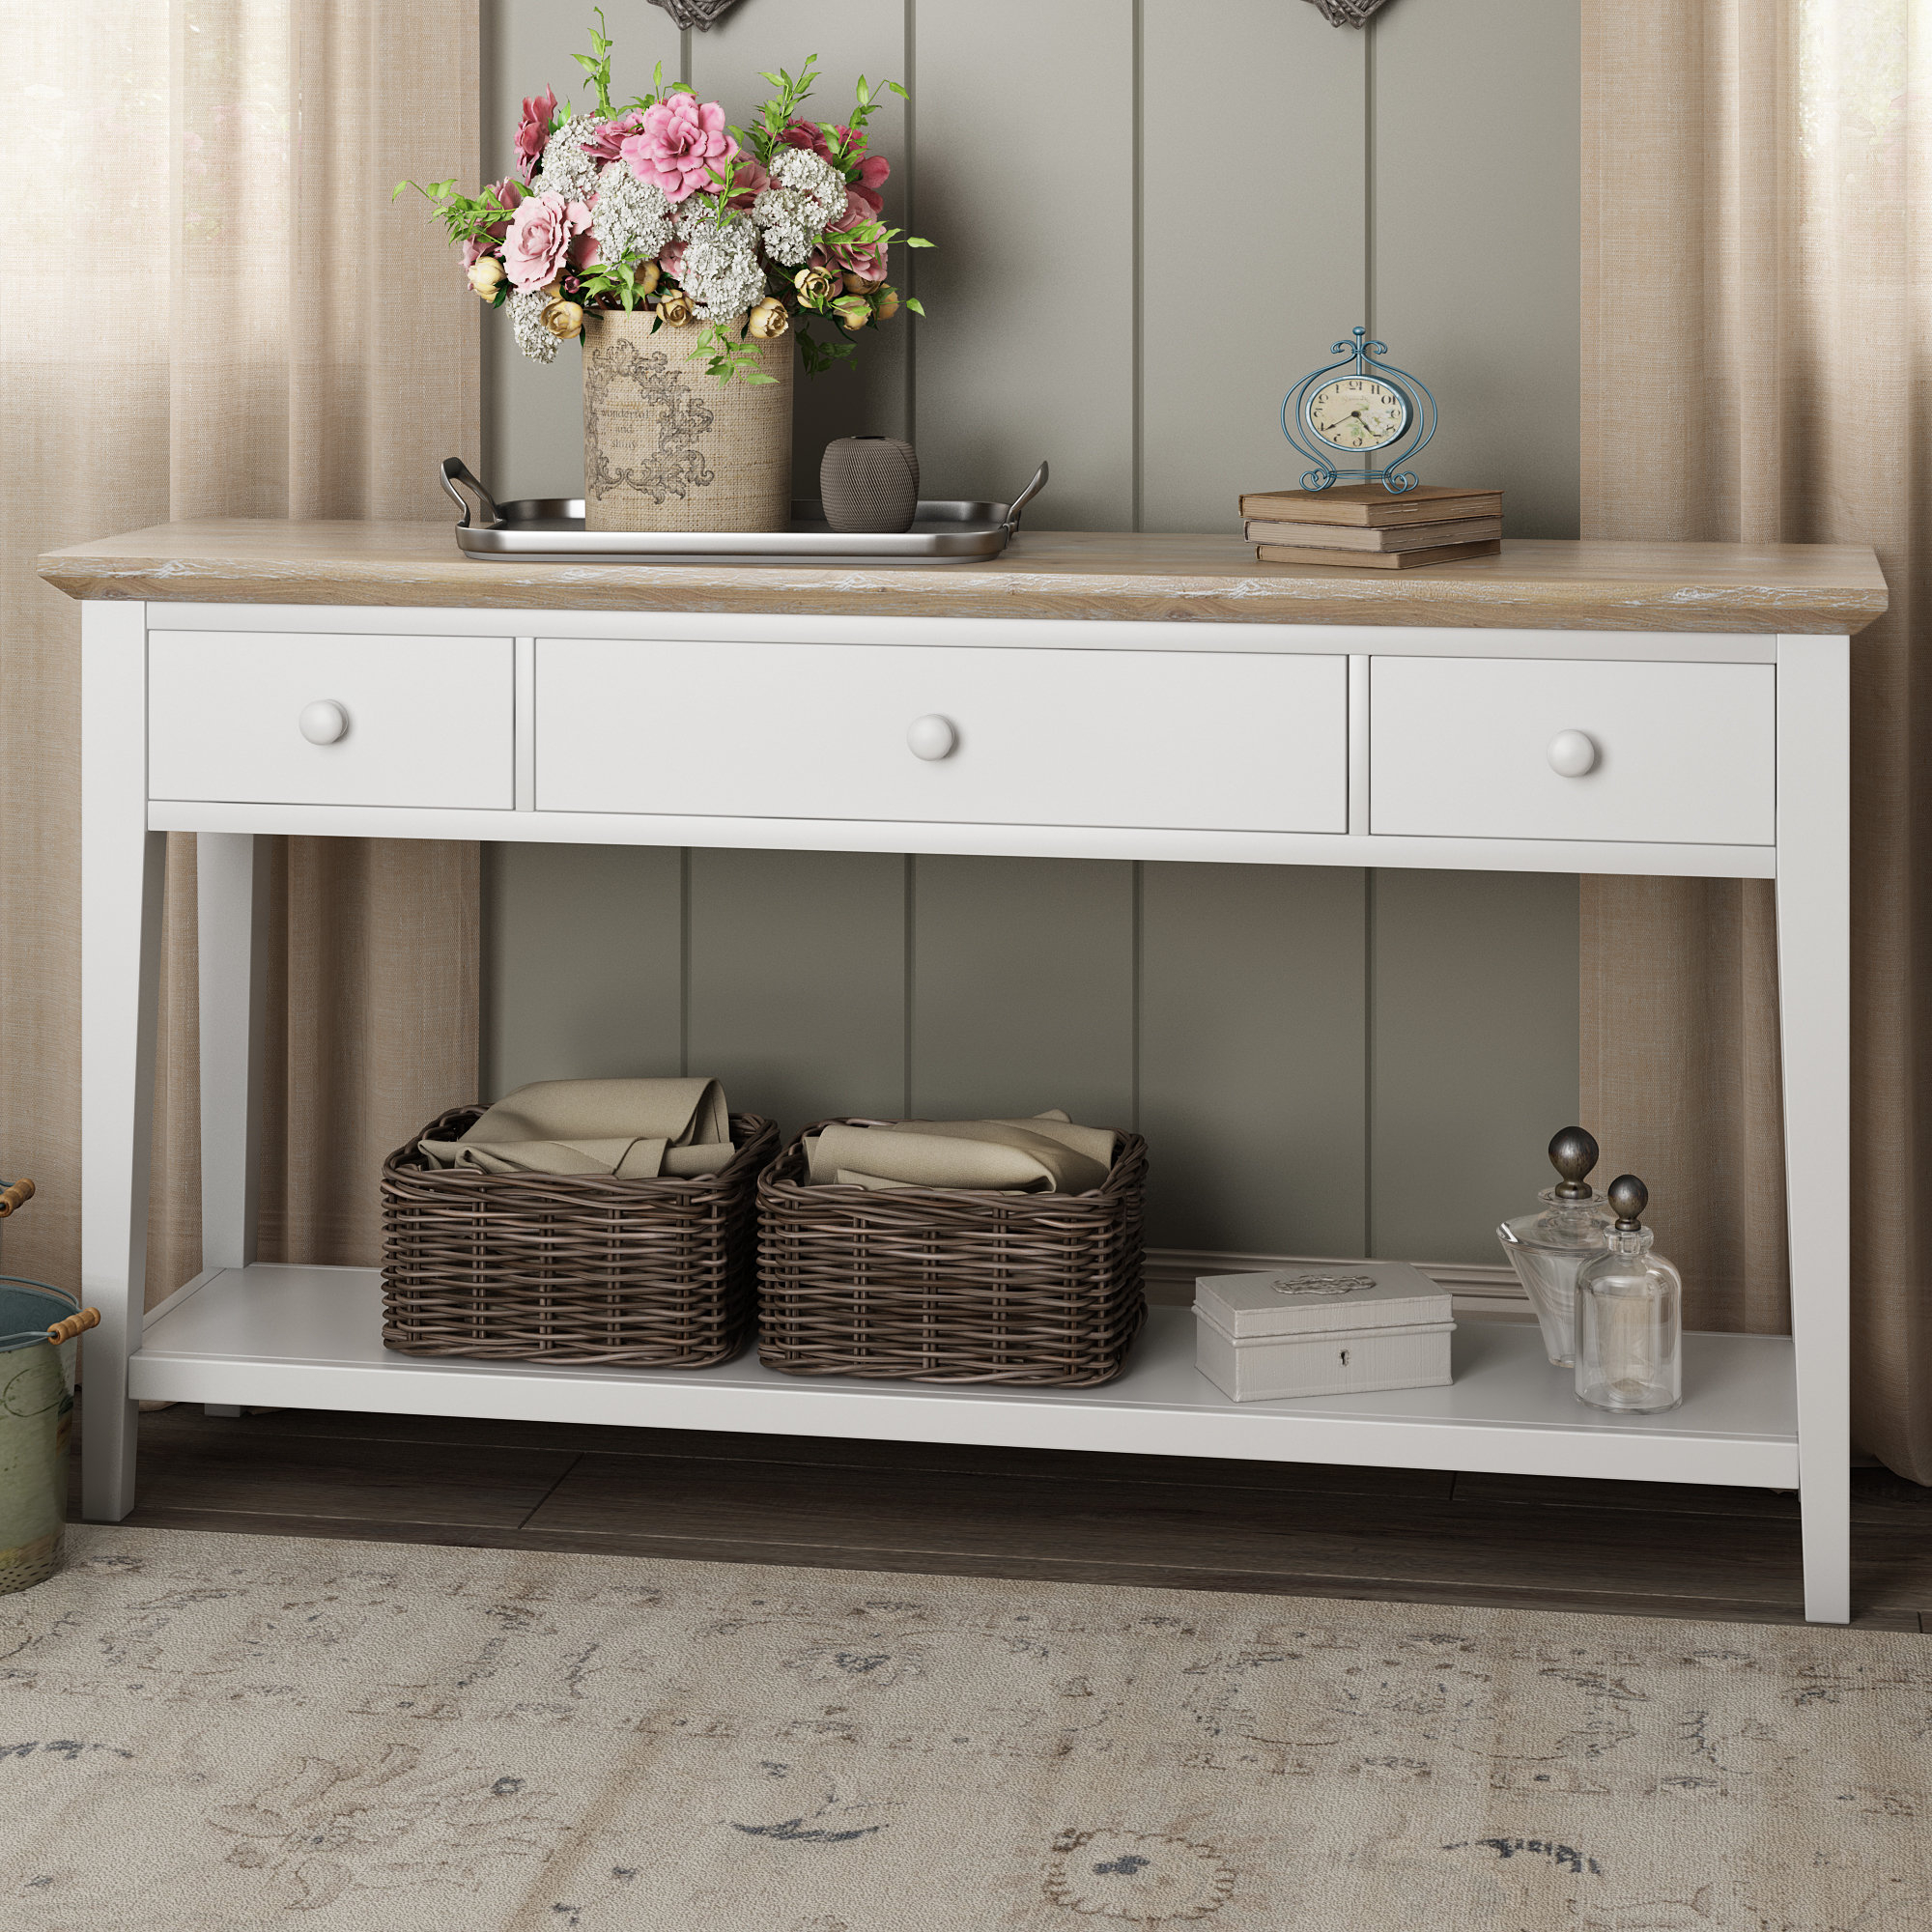 Echelon Console Tables Intended For Newest Console Tables & Hallway Tables You'll Love (Gallery 19 of 20)